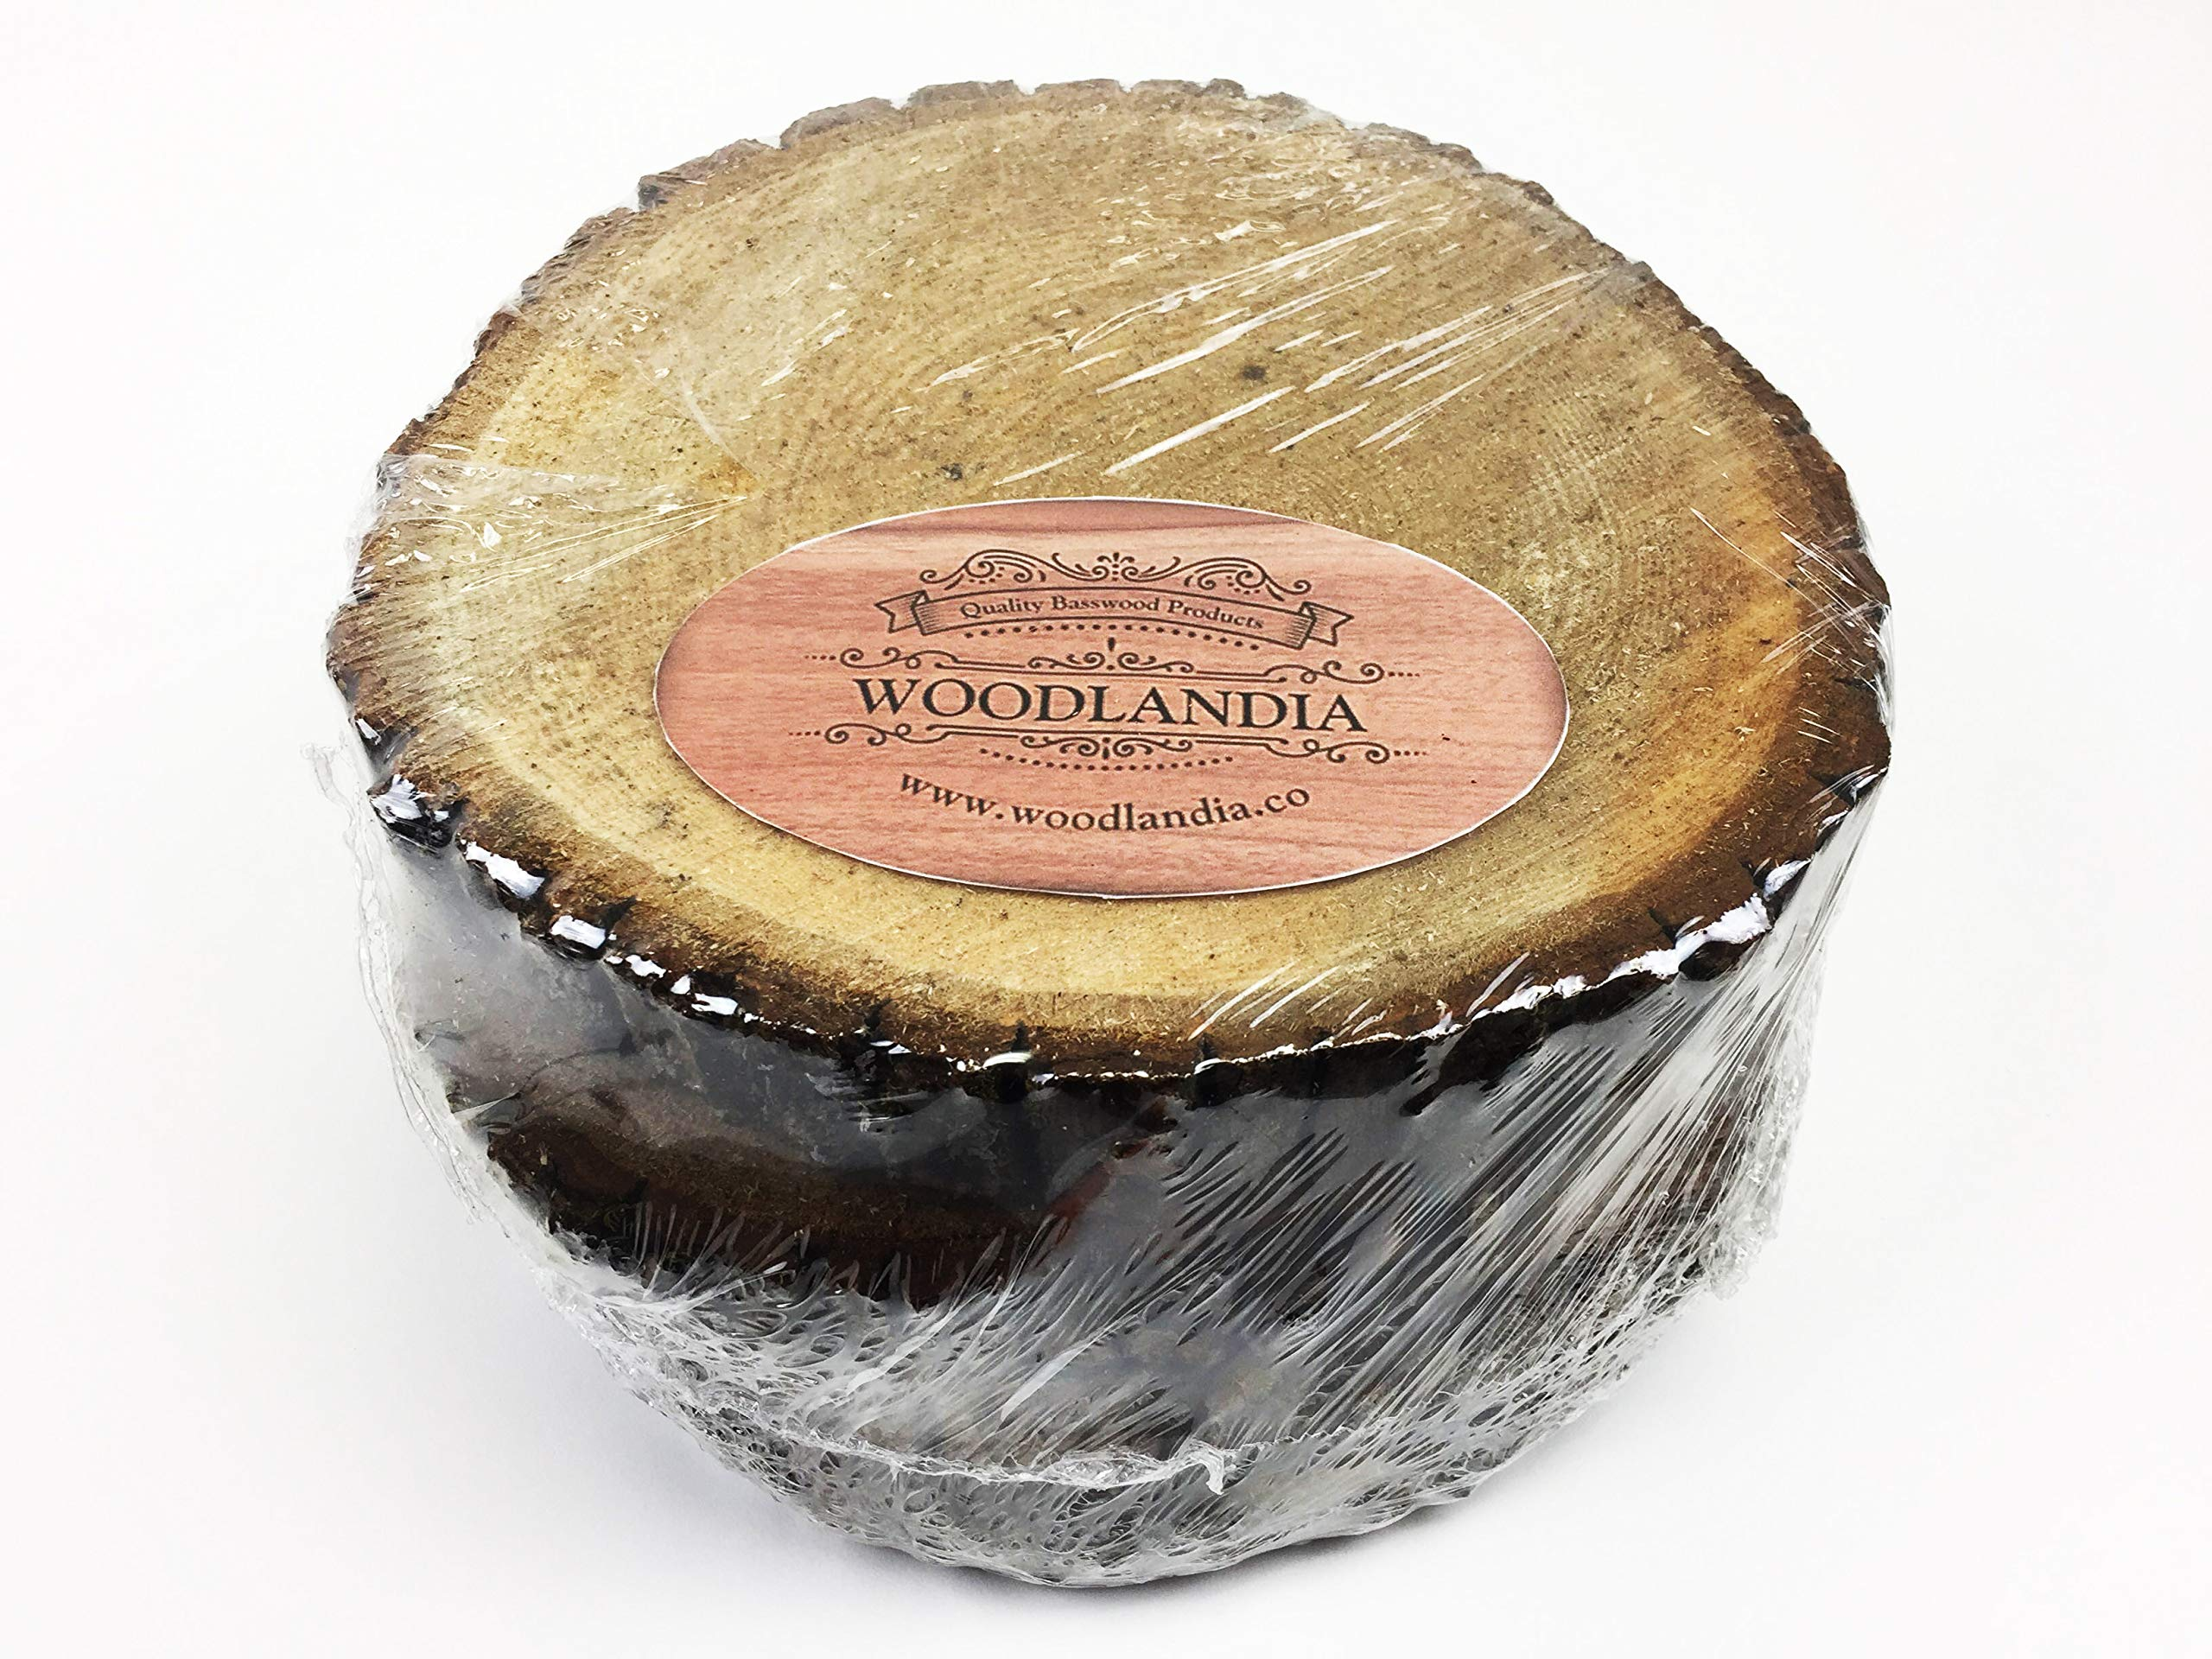 Woodlandia Basswood Disk 8x1 Inches - 4 Pack by Woodlandia (Image #6)